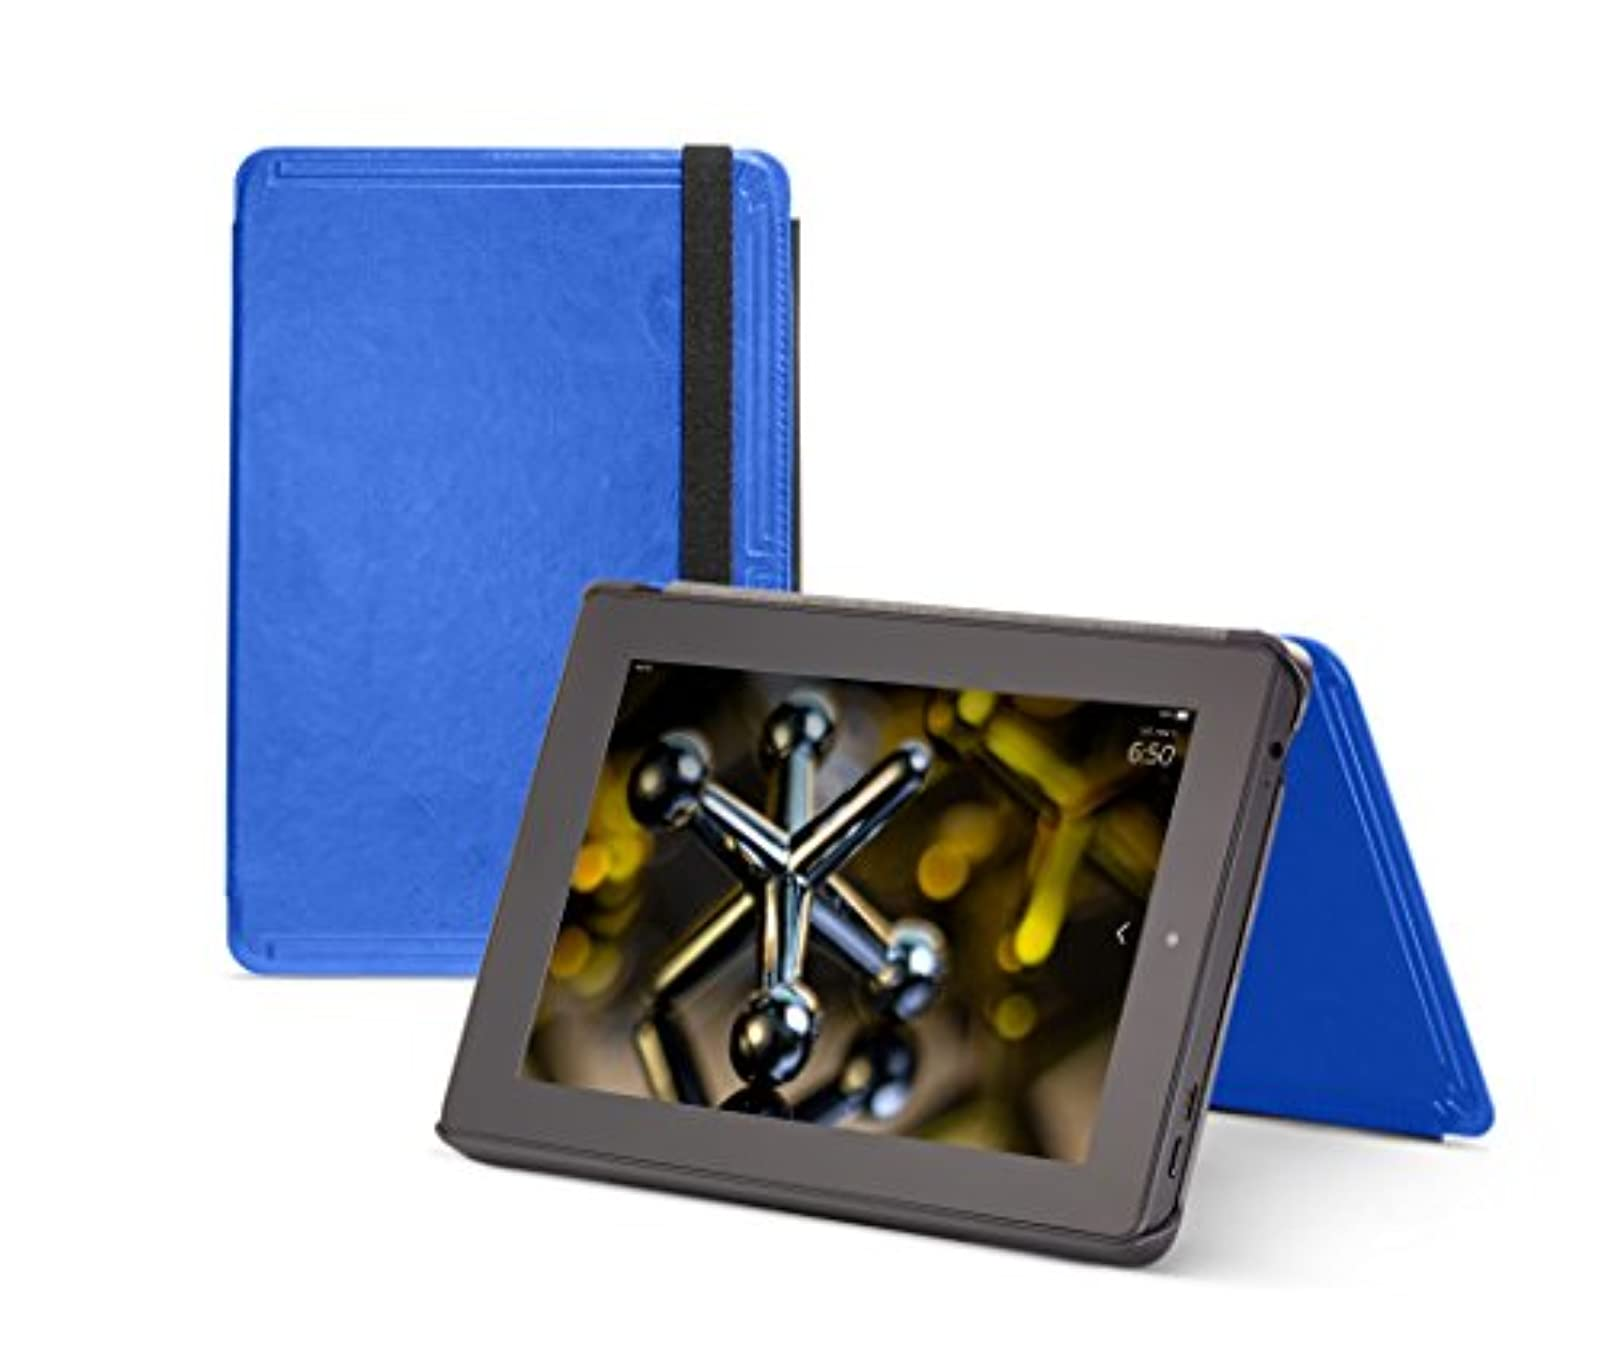 Marblue Slimtech Case For Fire HD 7 Only Fits 4th Generation Fire HD 7 Blue Cove